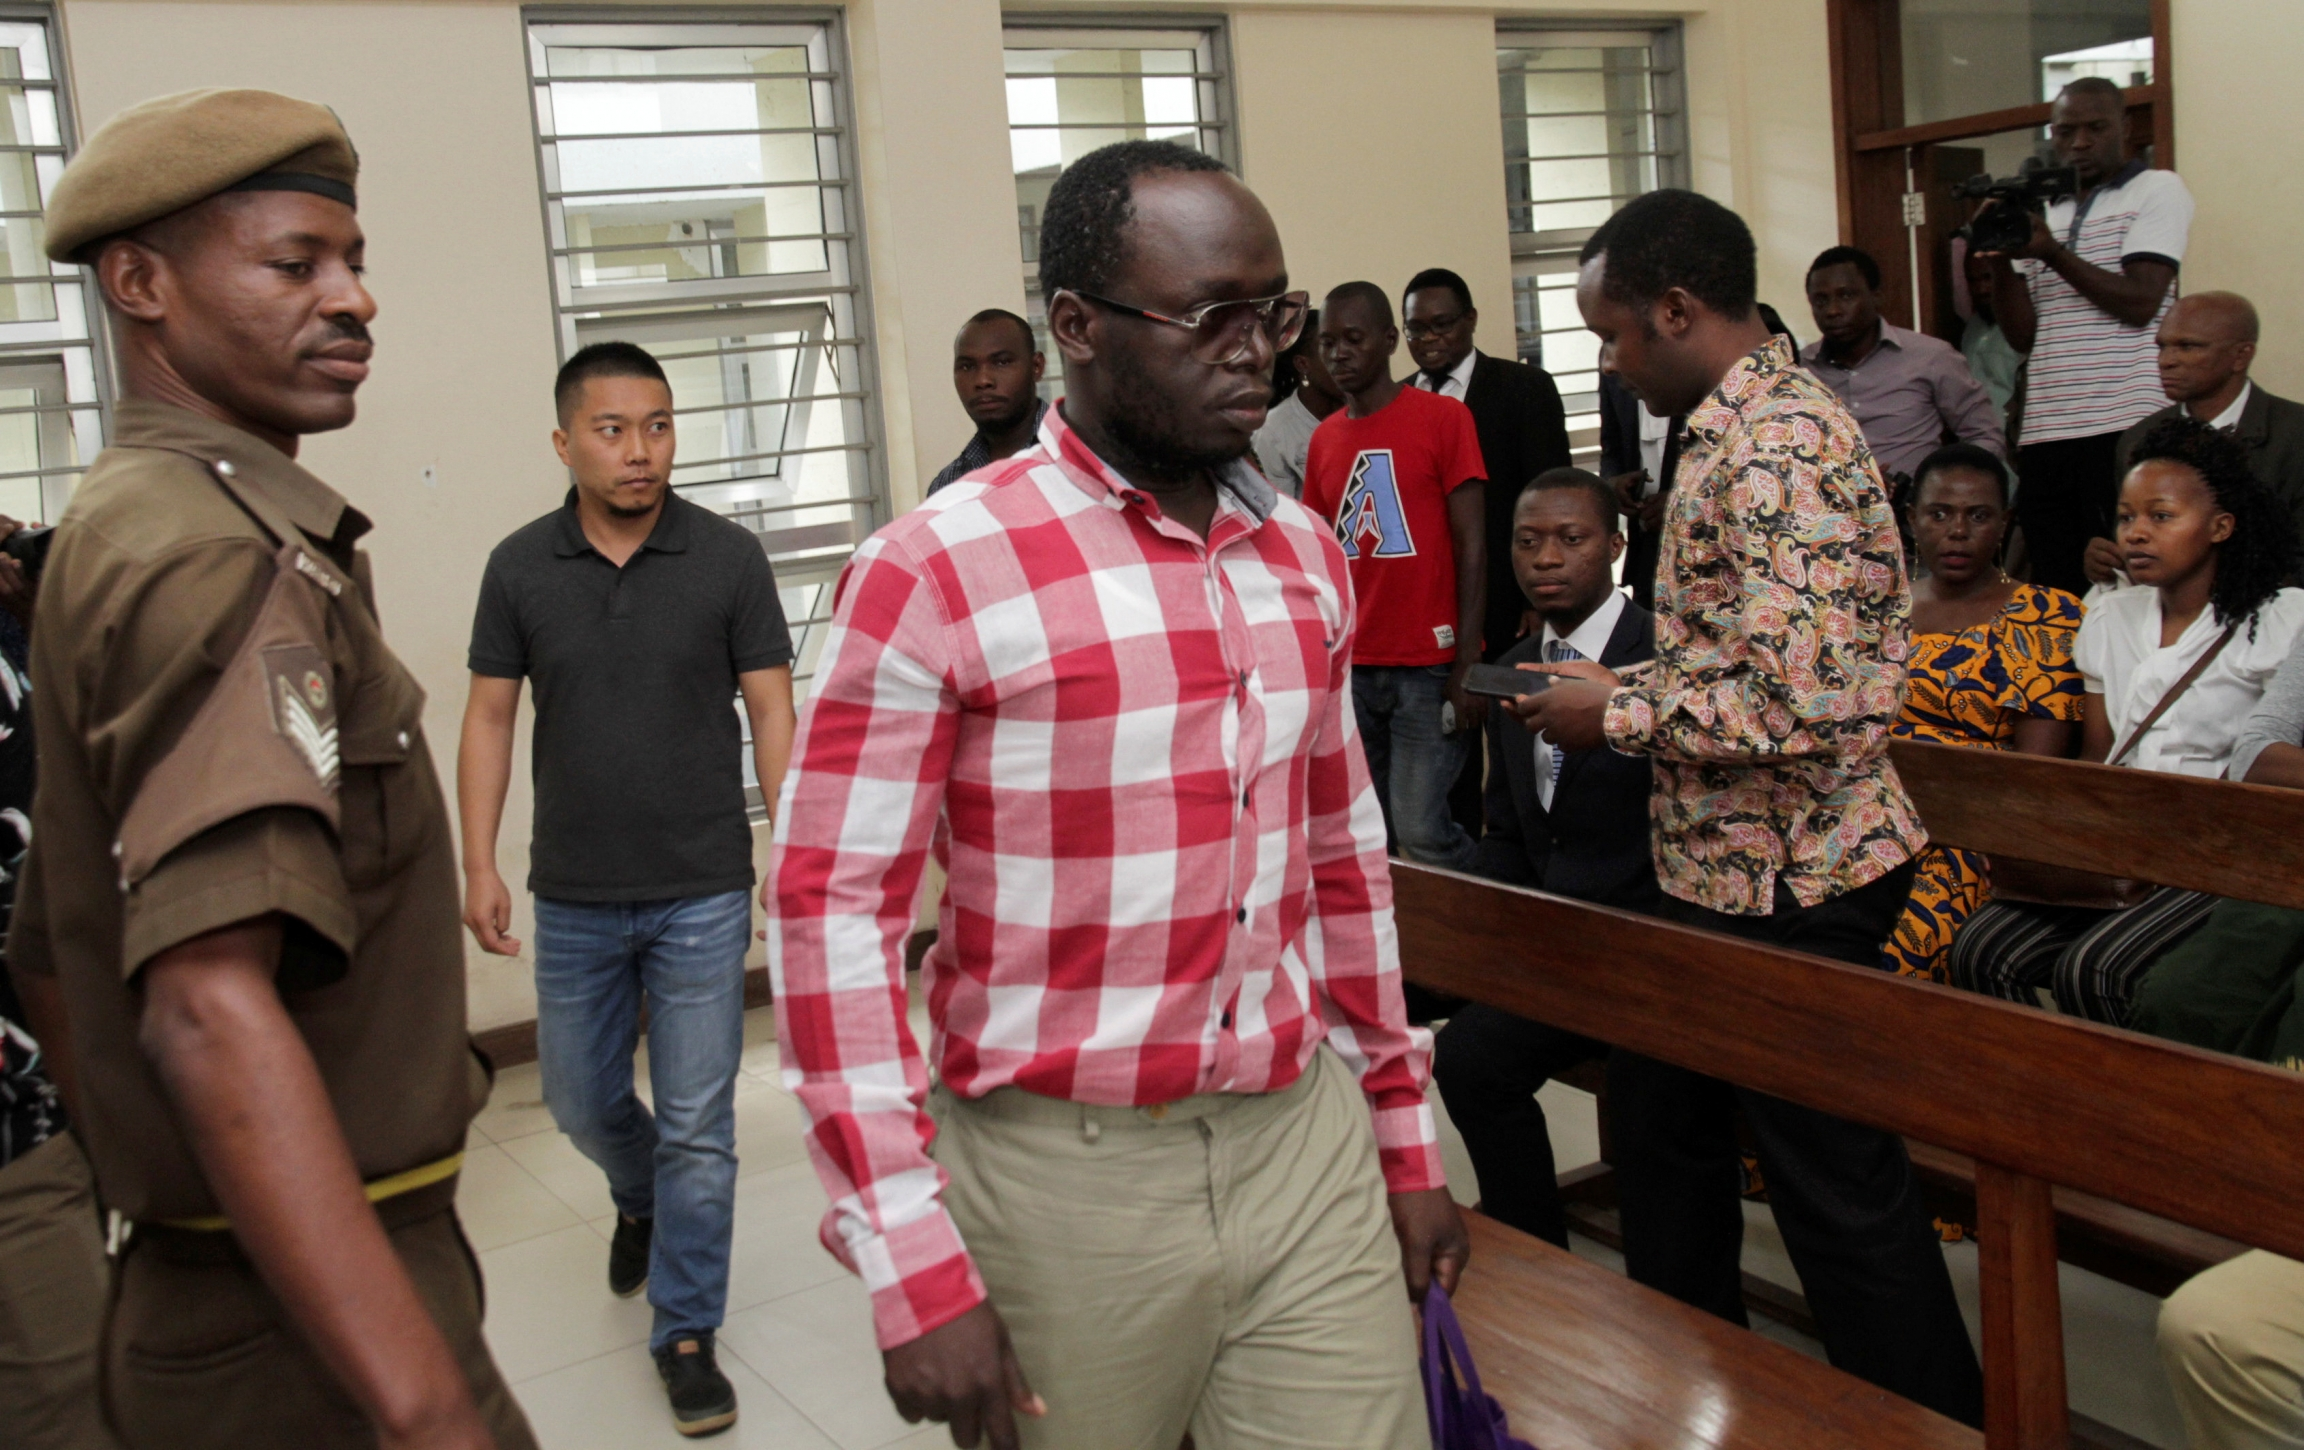 Erick Kabendera wears a white and red shirt and leaves a court room flanked by police